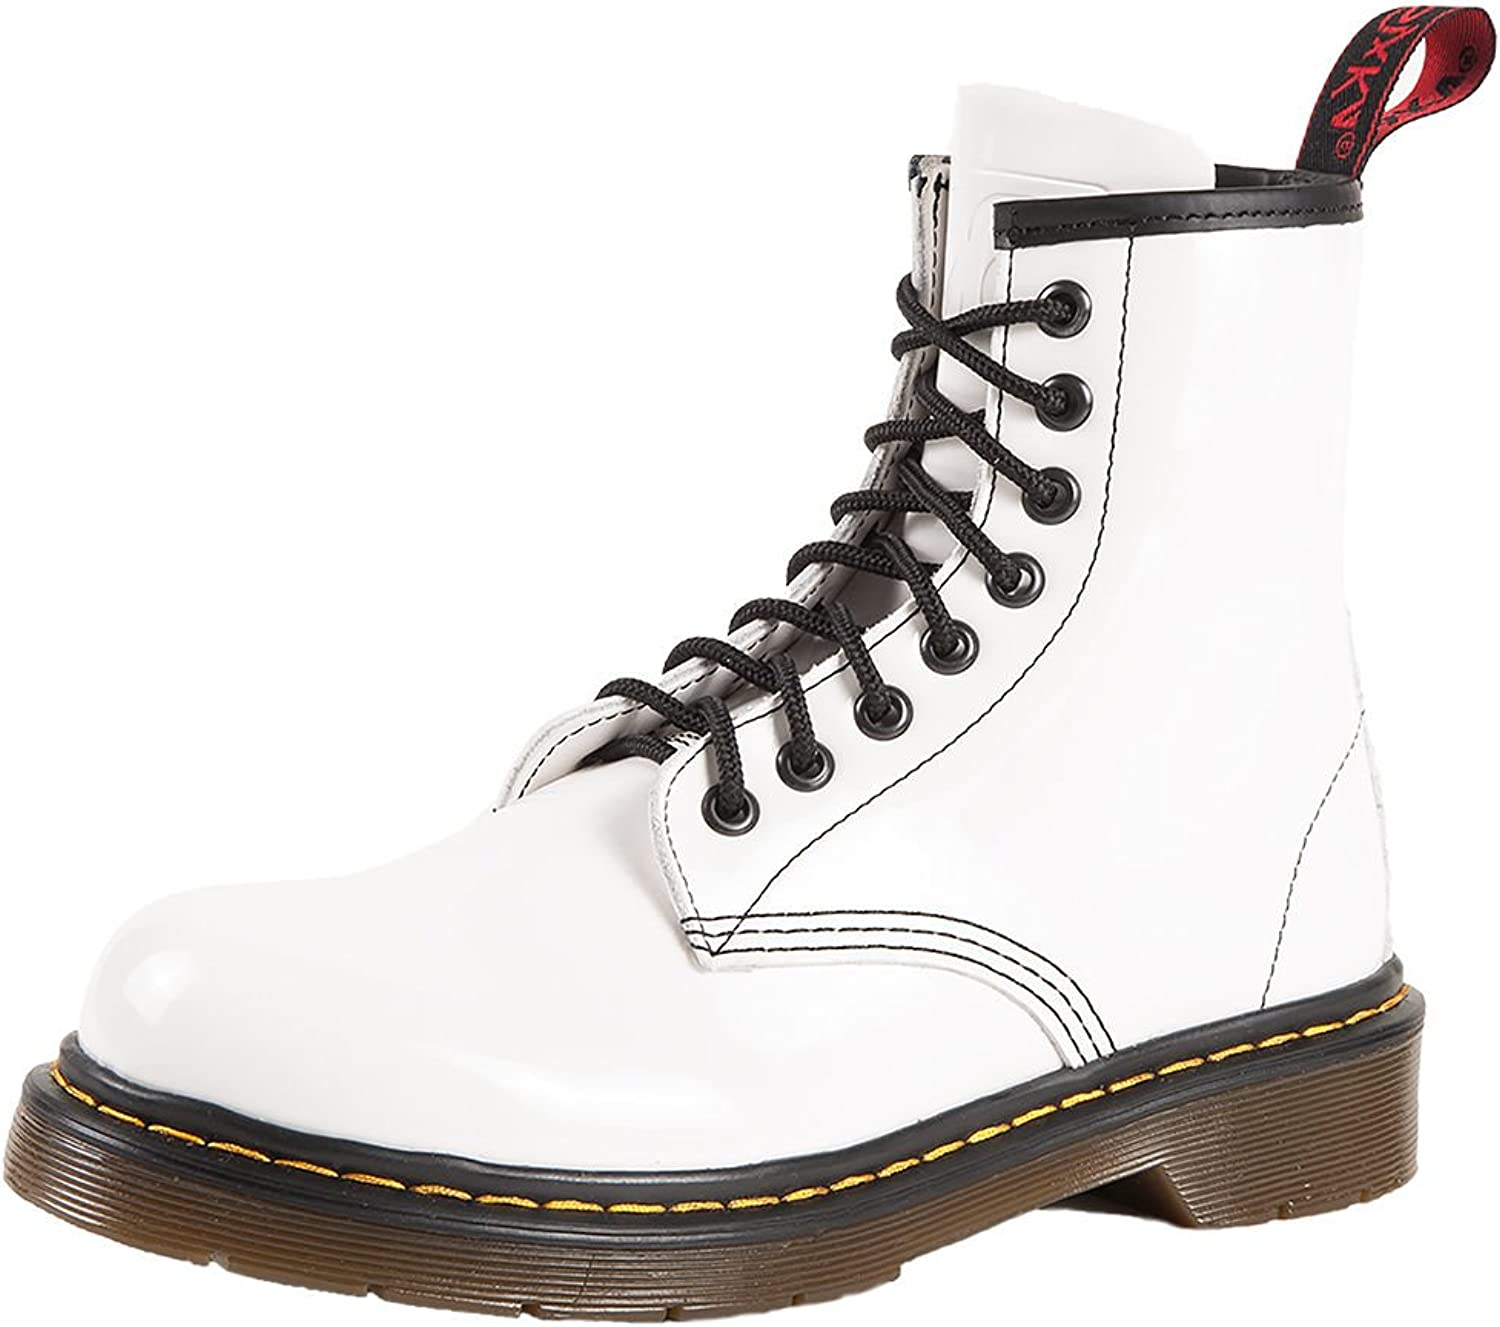 SK7 Women's Hot Stylish Coventry Gloss Leather Fashion Ankle Boots Snow White - 9.5